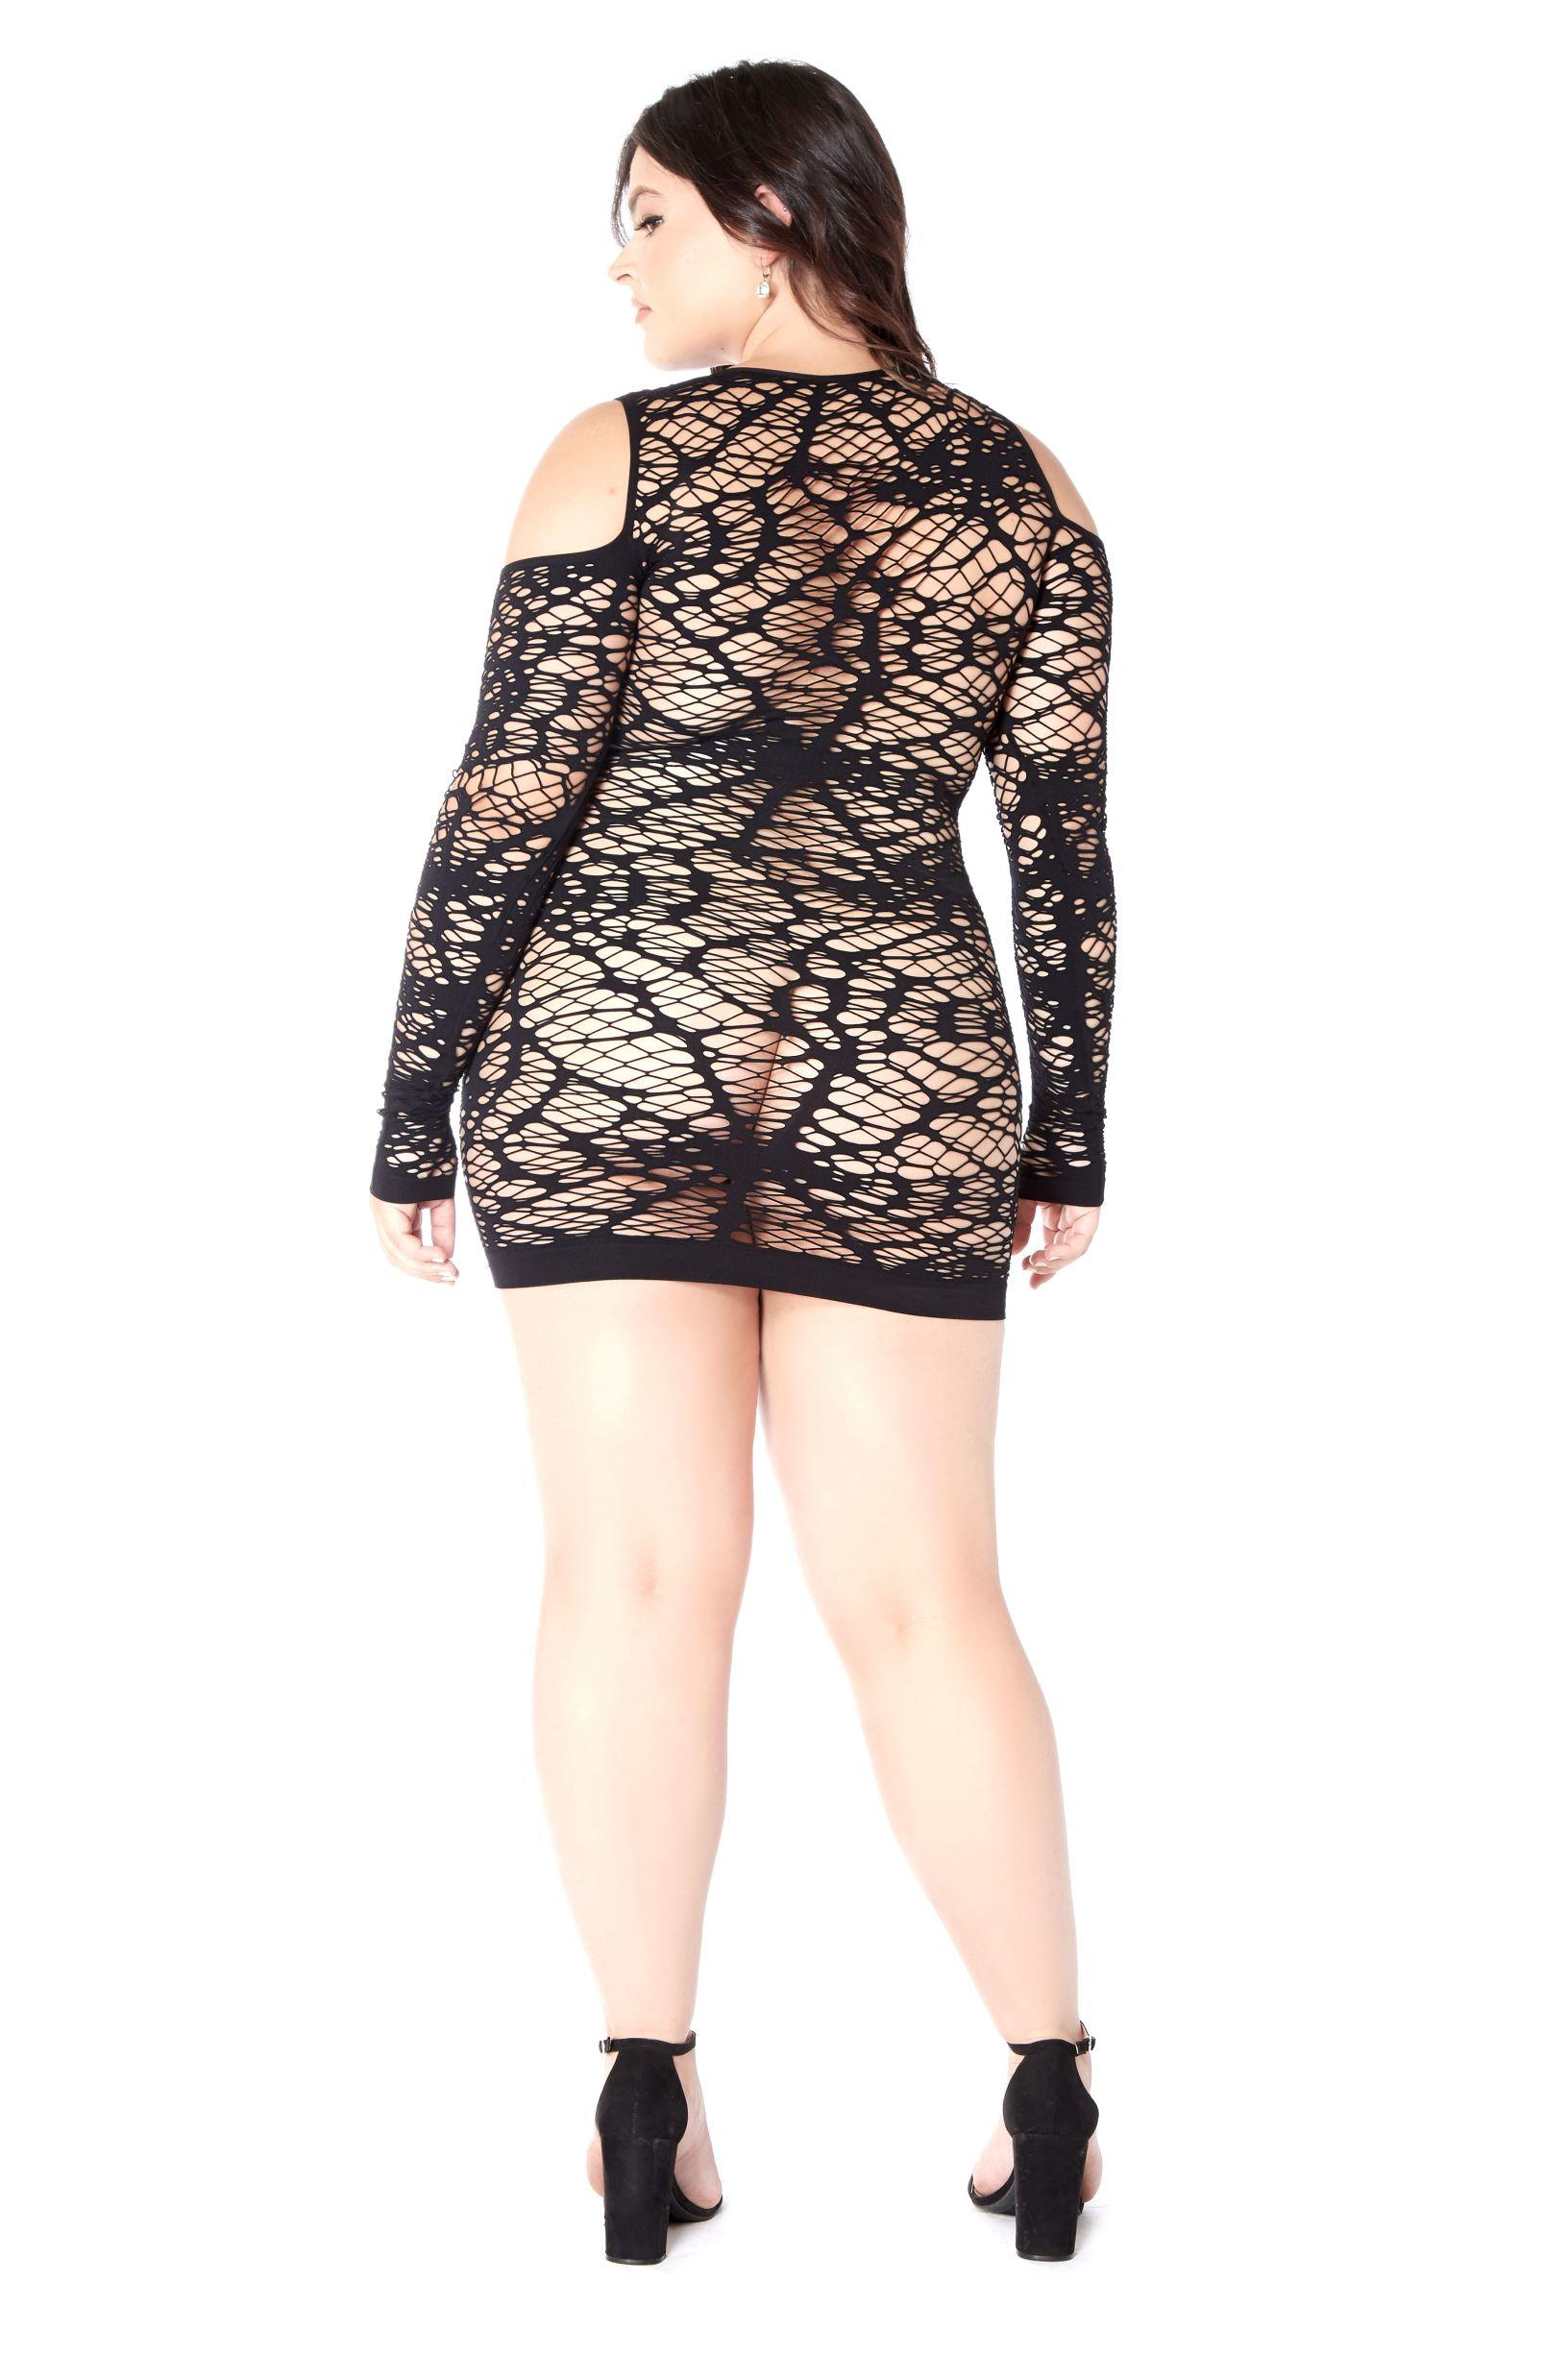 Black long sleeved chemise rear view